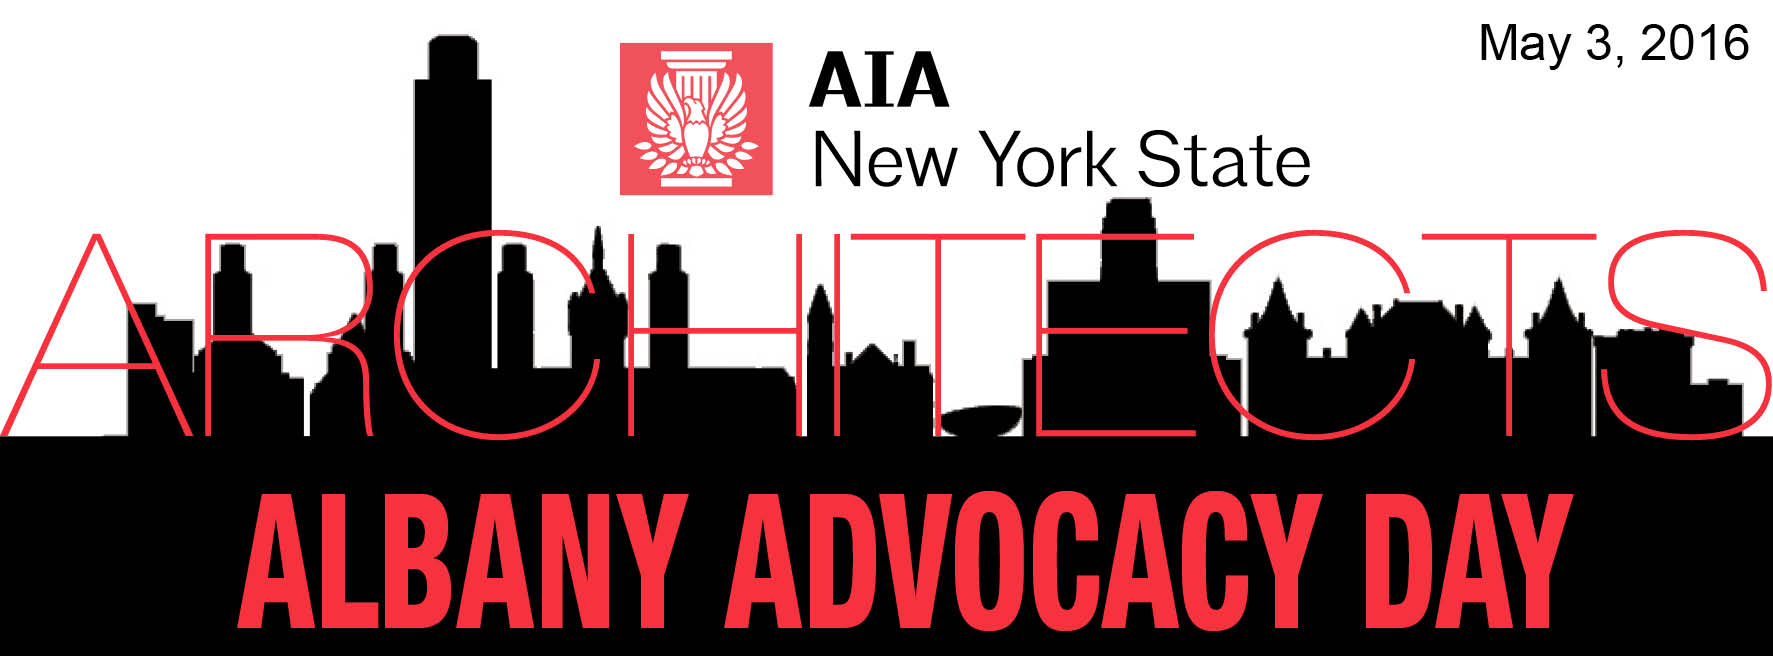 AIA Advocacy banner